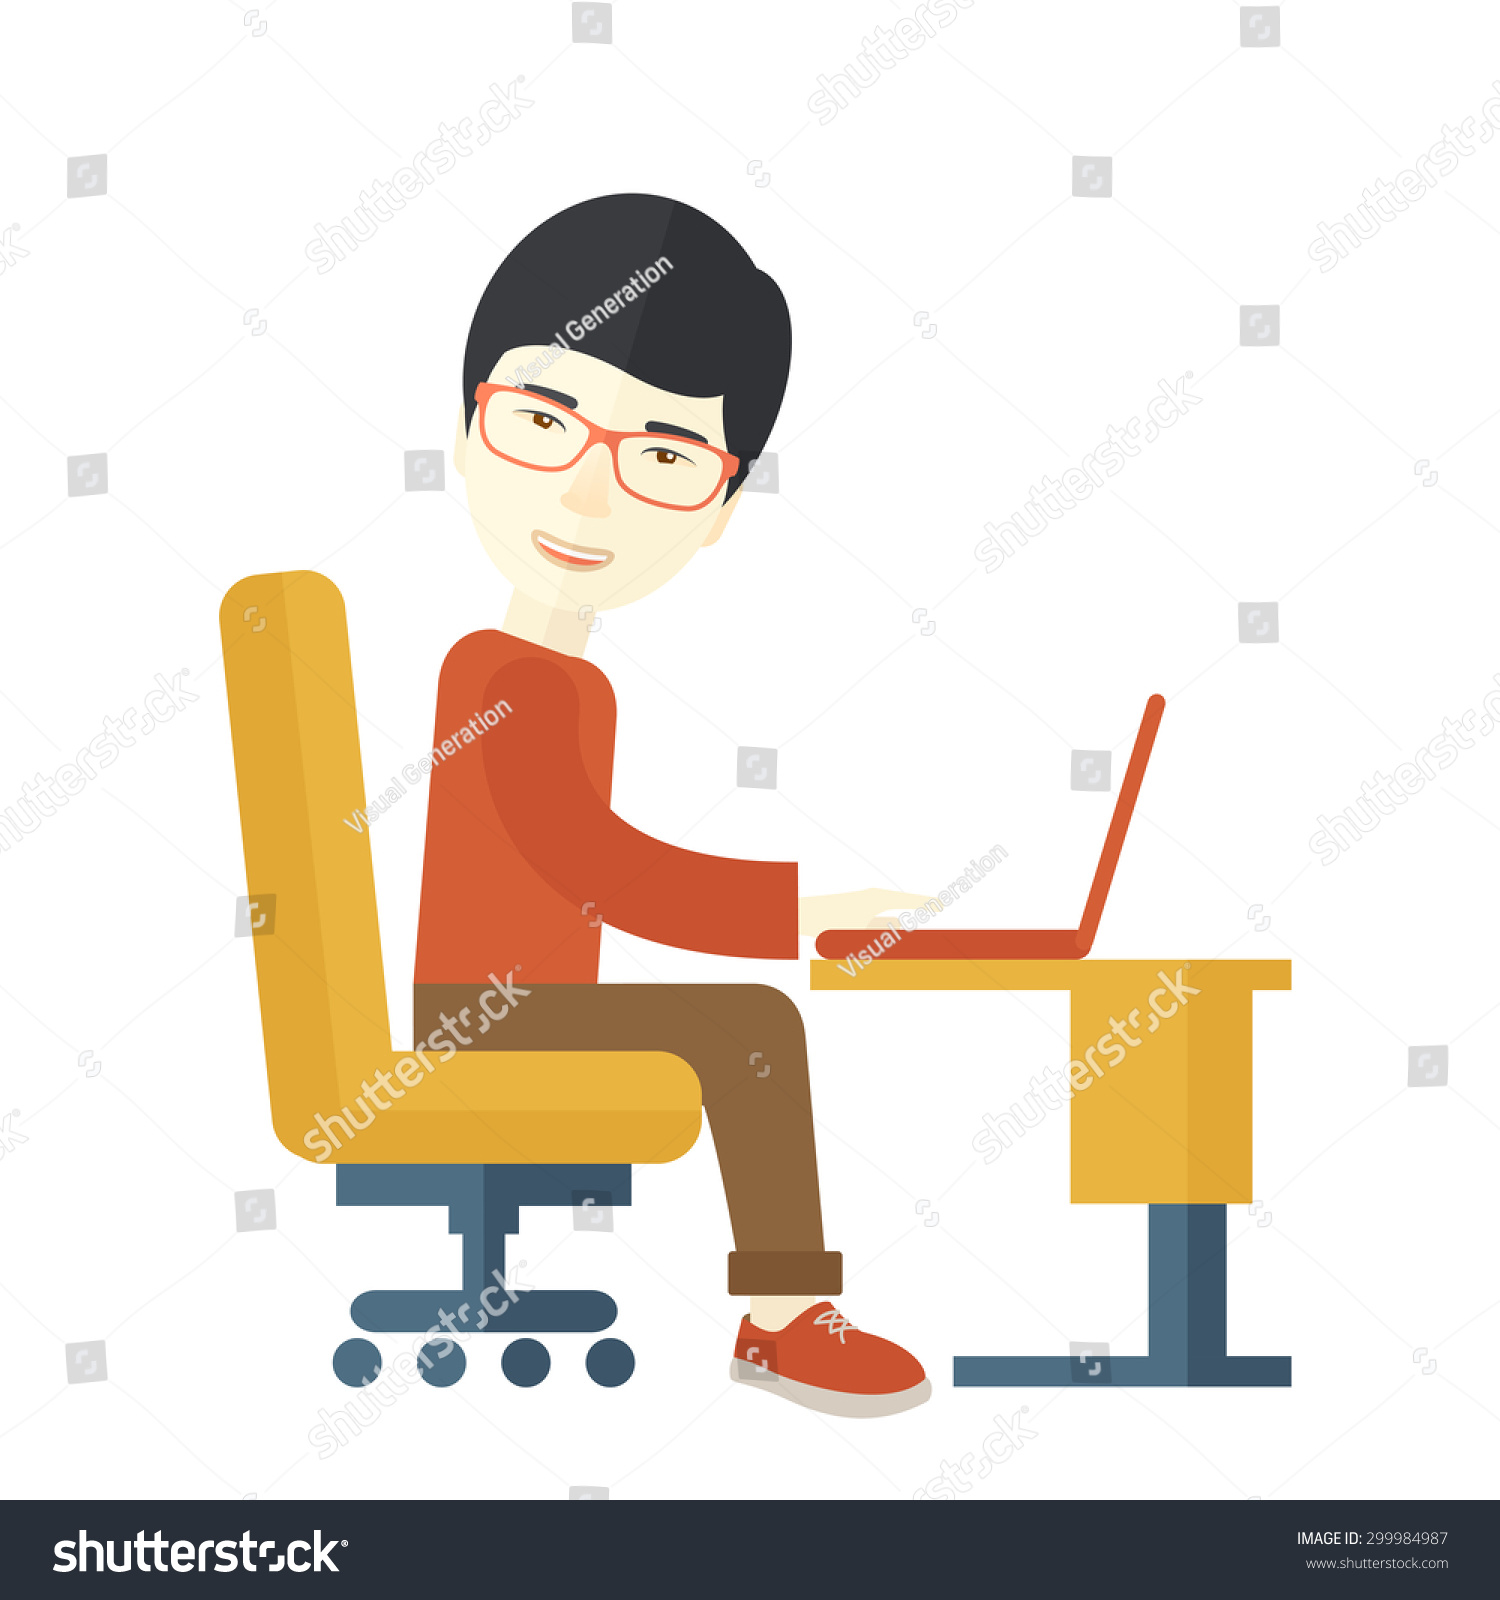 Japanese Guy Sitting Front Computer Looking Stock Vector